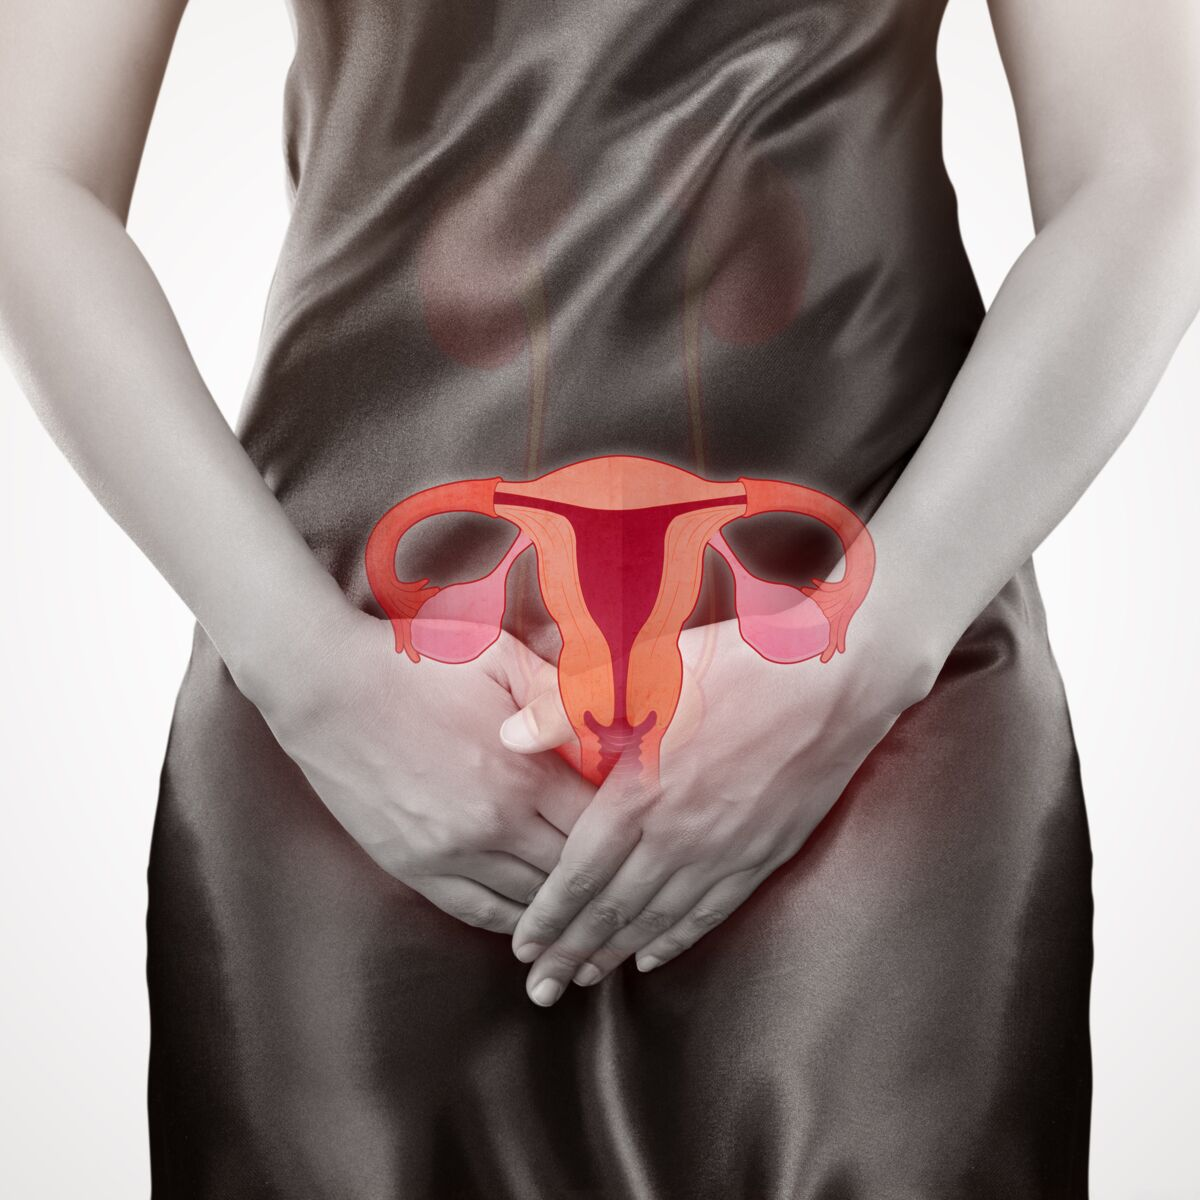 Papilloma meaning - Cancer uterine or endometrial